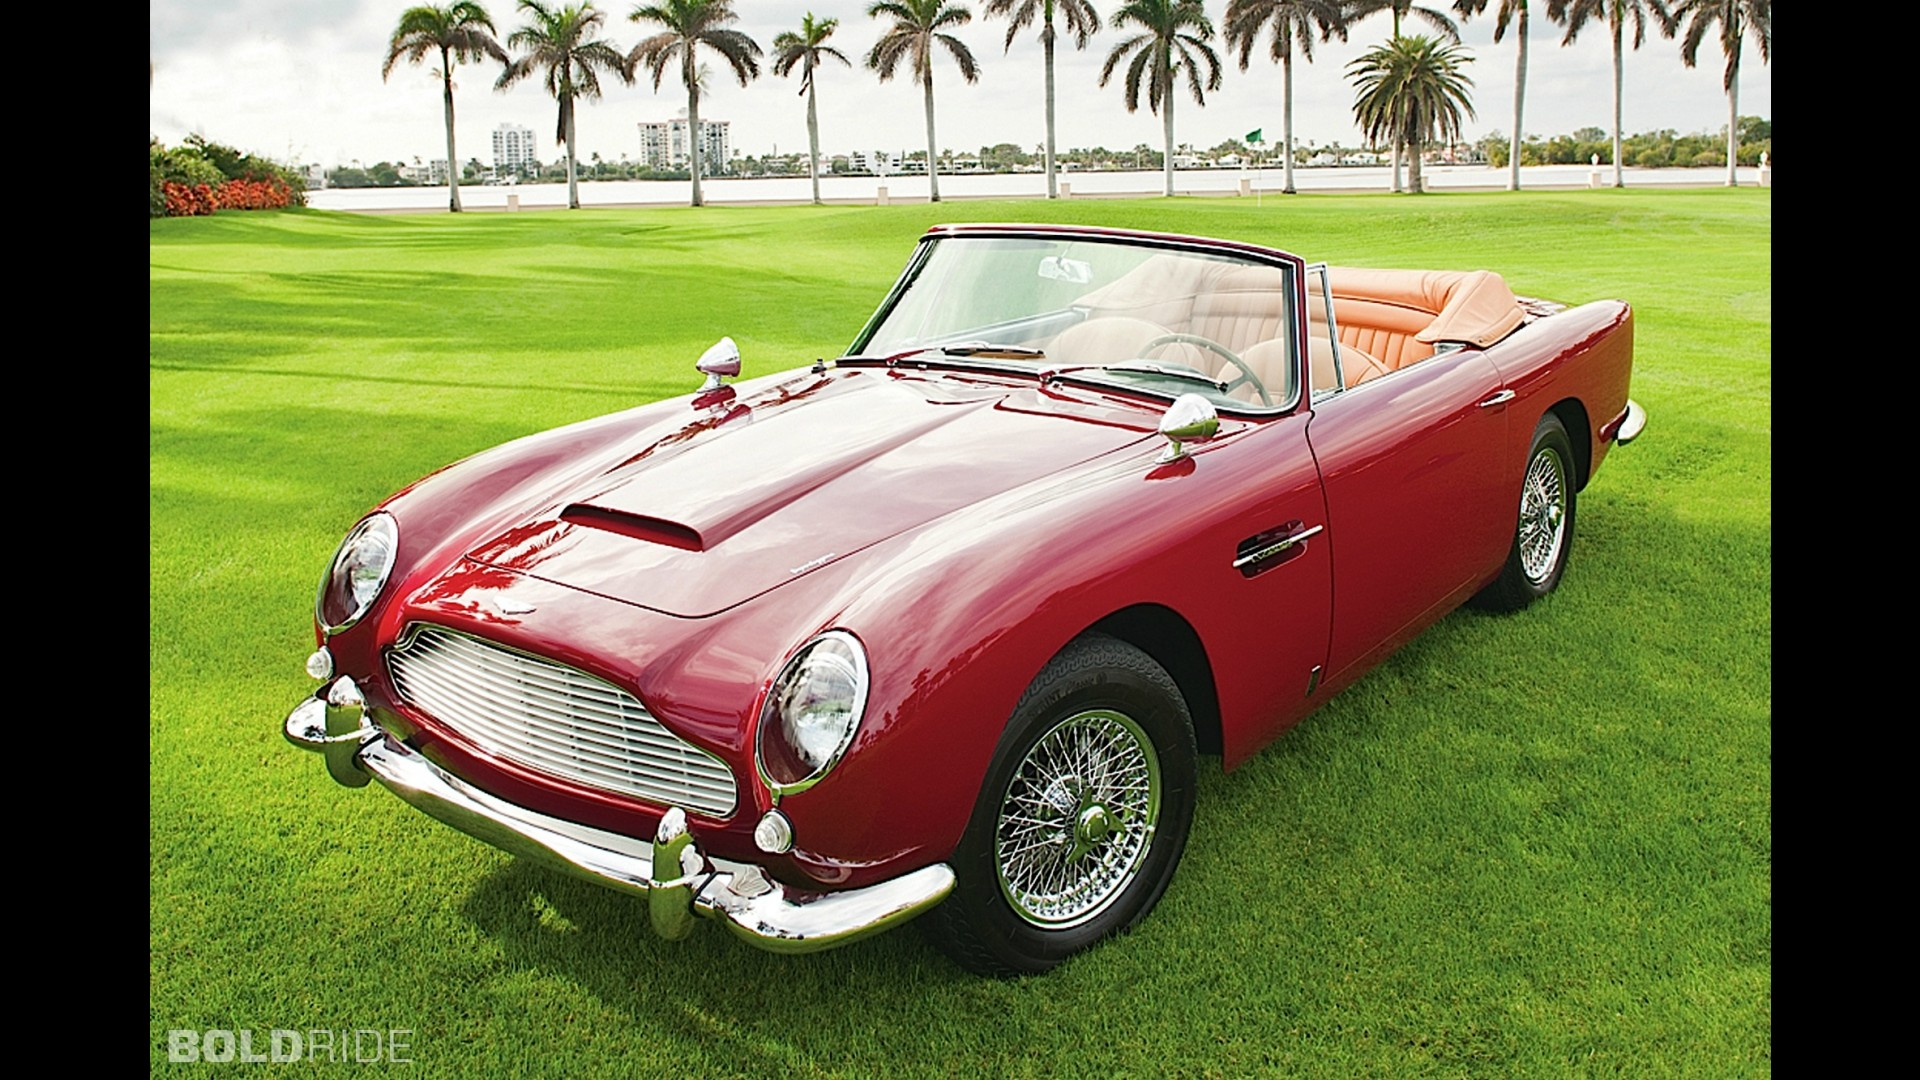 aston martin db5 vantage convertible. Black Bedroom Furniture Sets. Home Design Ideas